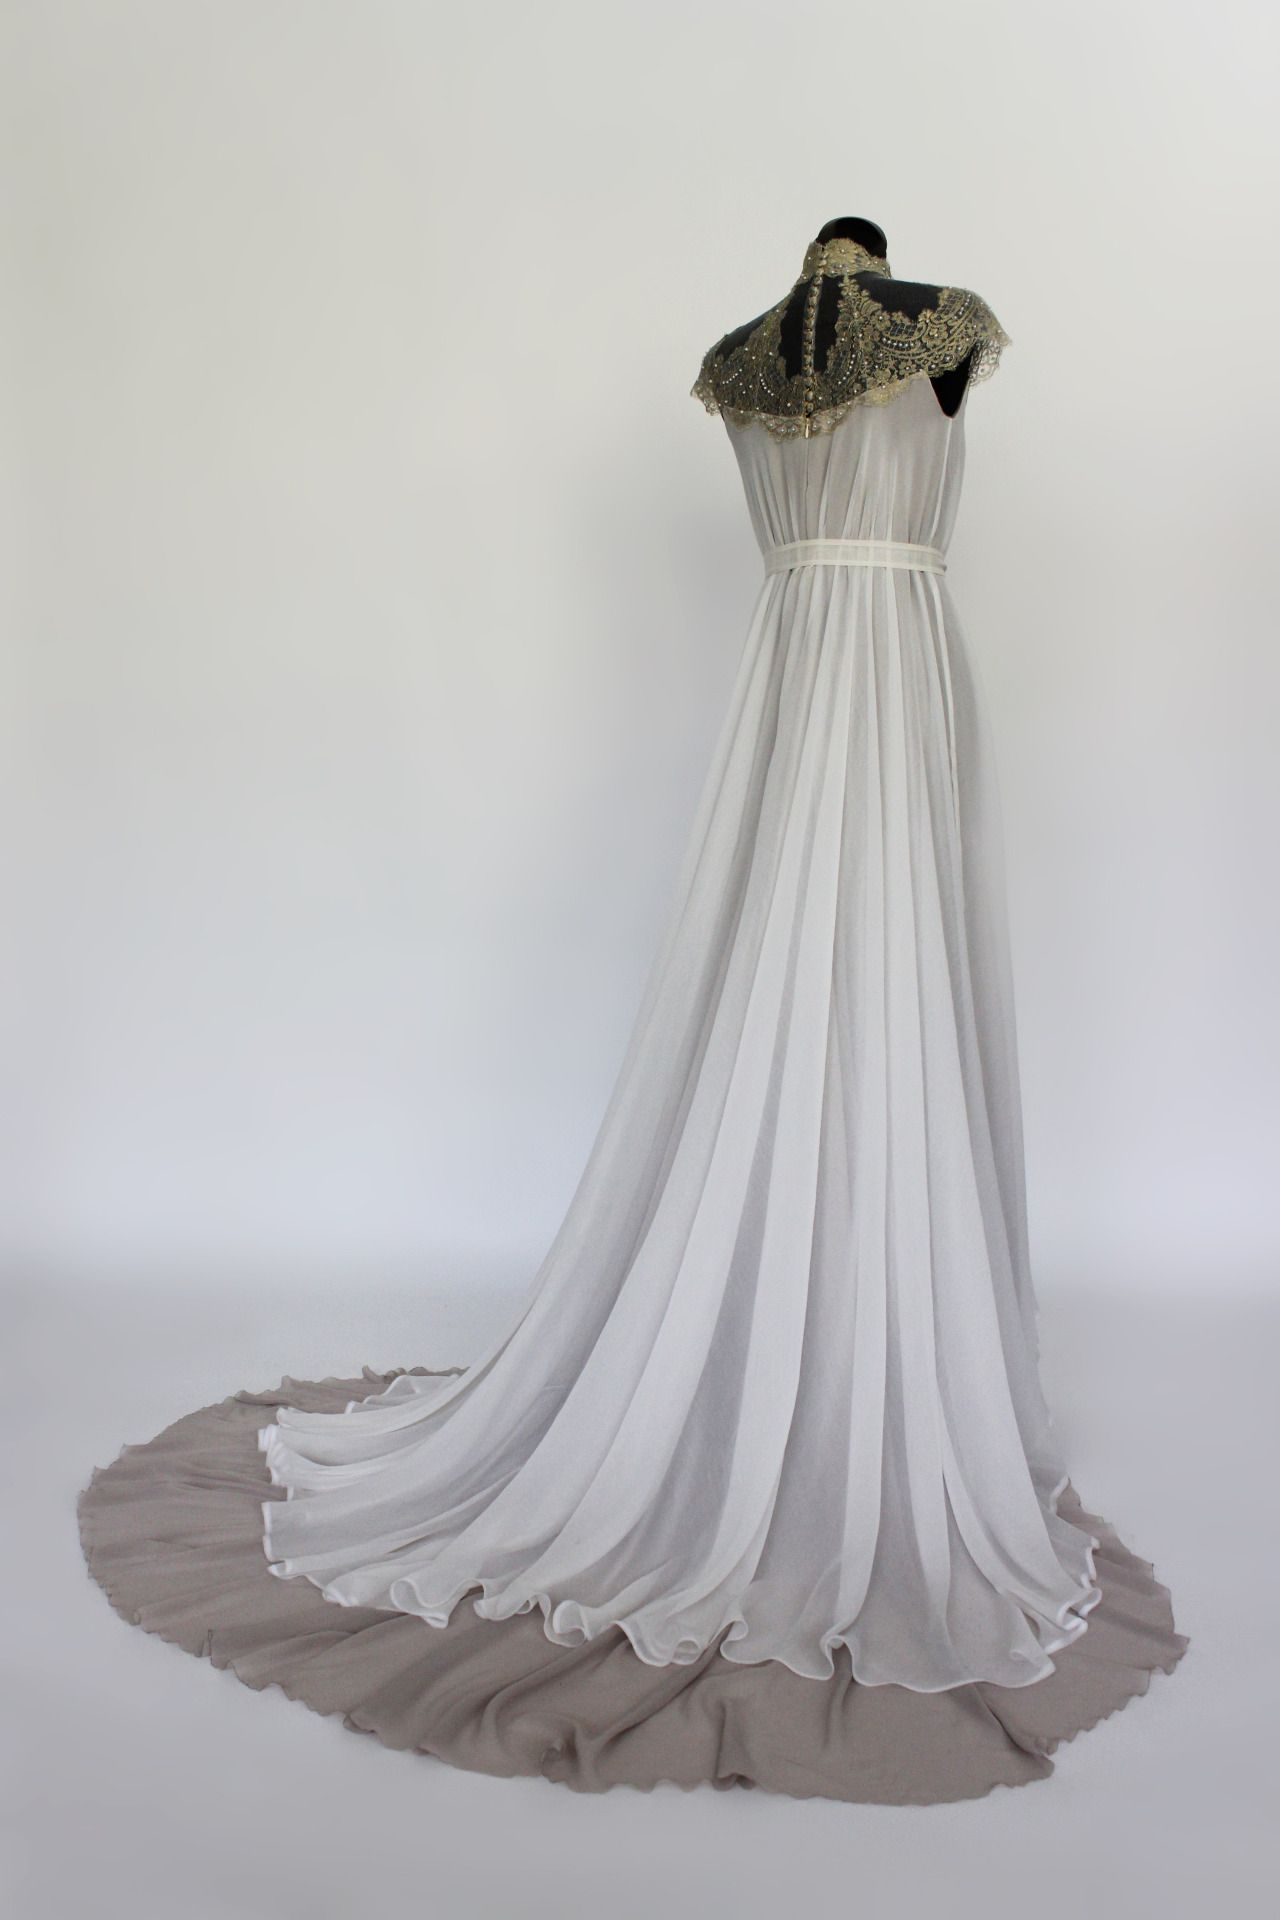 lindafriesen: Art Nouveau inspired wedding dress, made of 3 layers ...